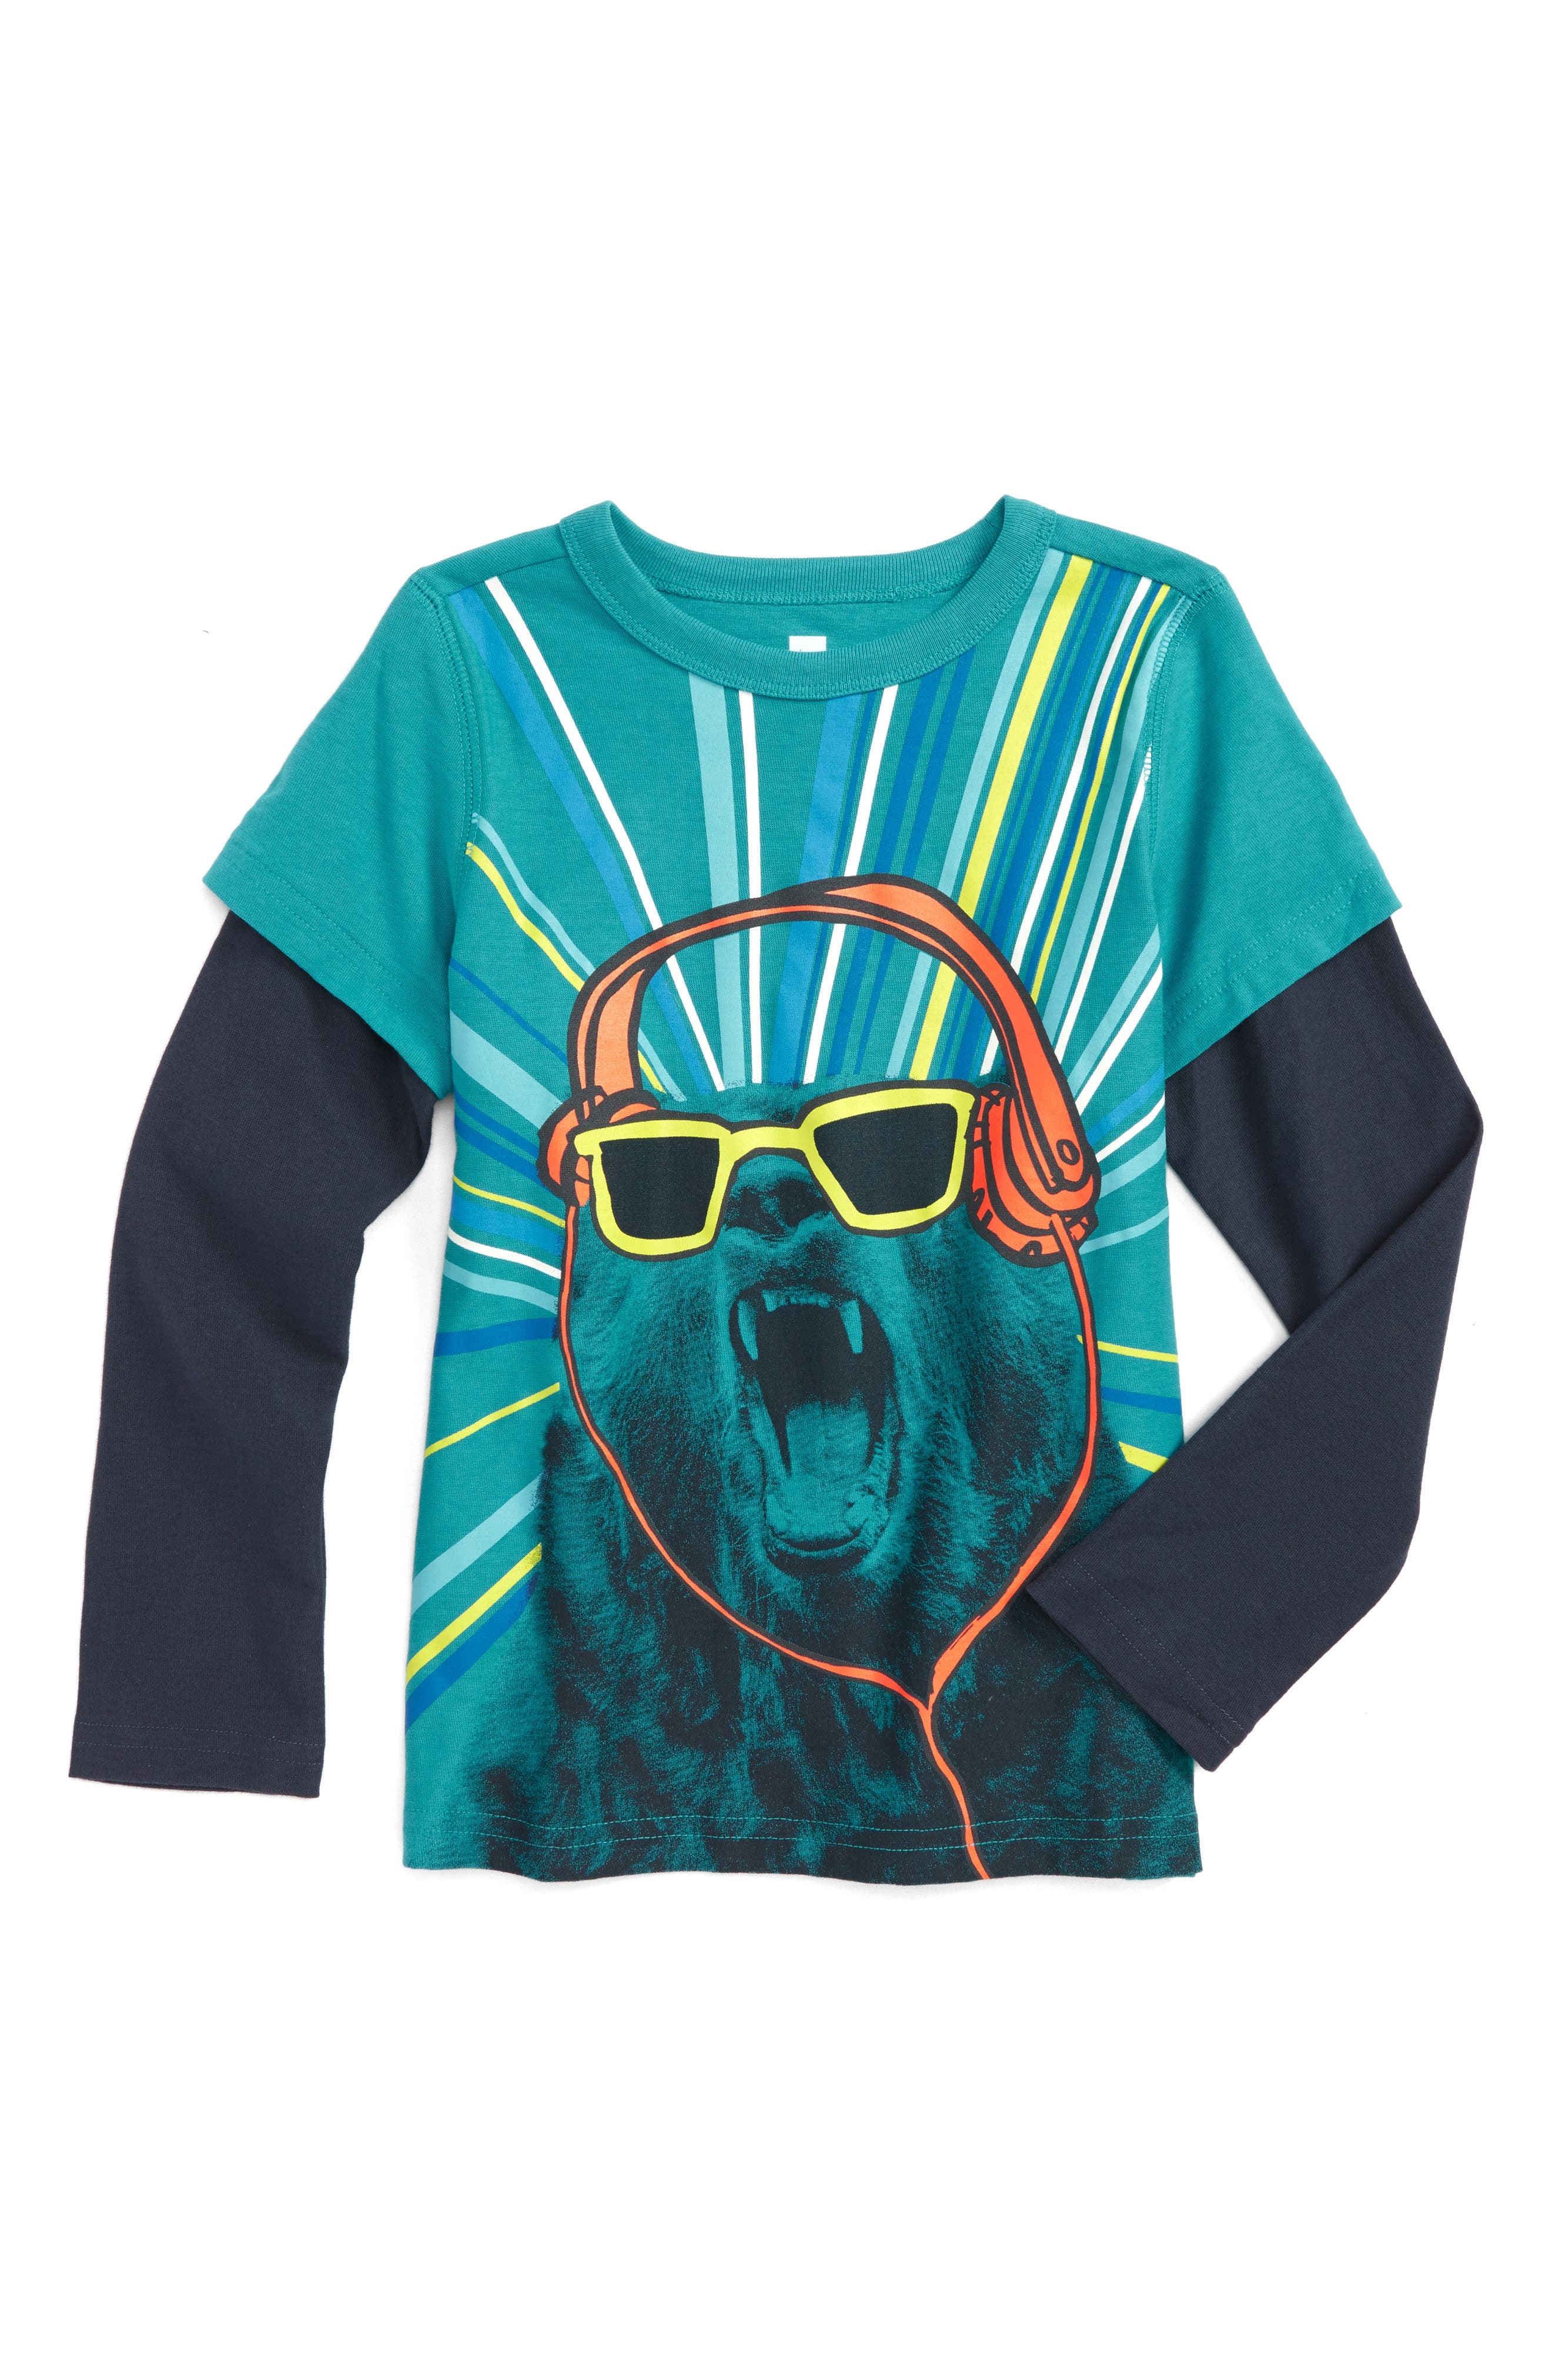 Bear With Me Graphic T-Shirt,                         Main,                         color, 450